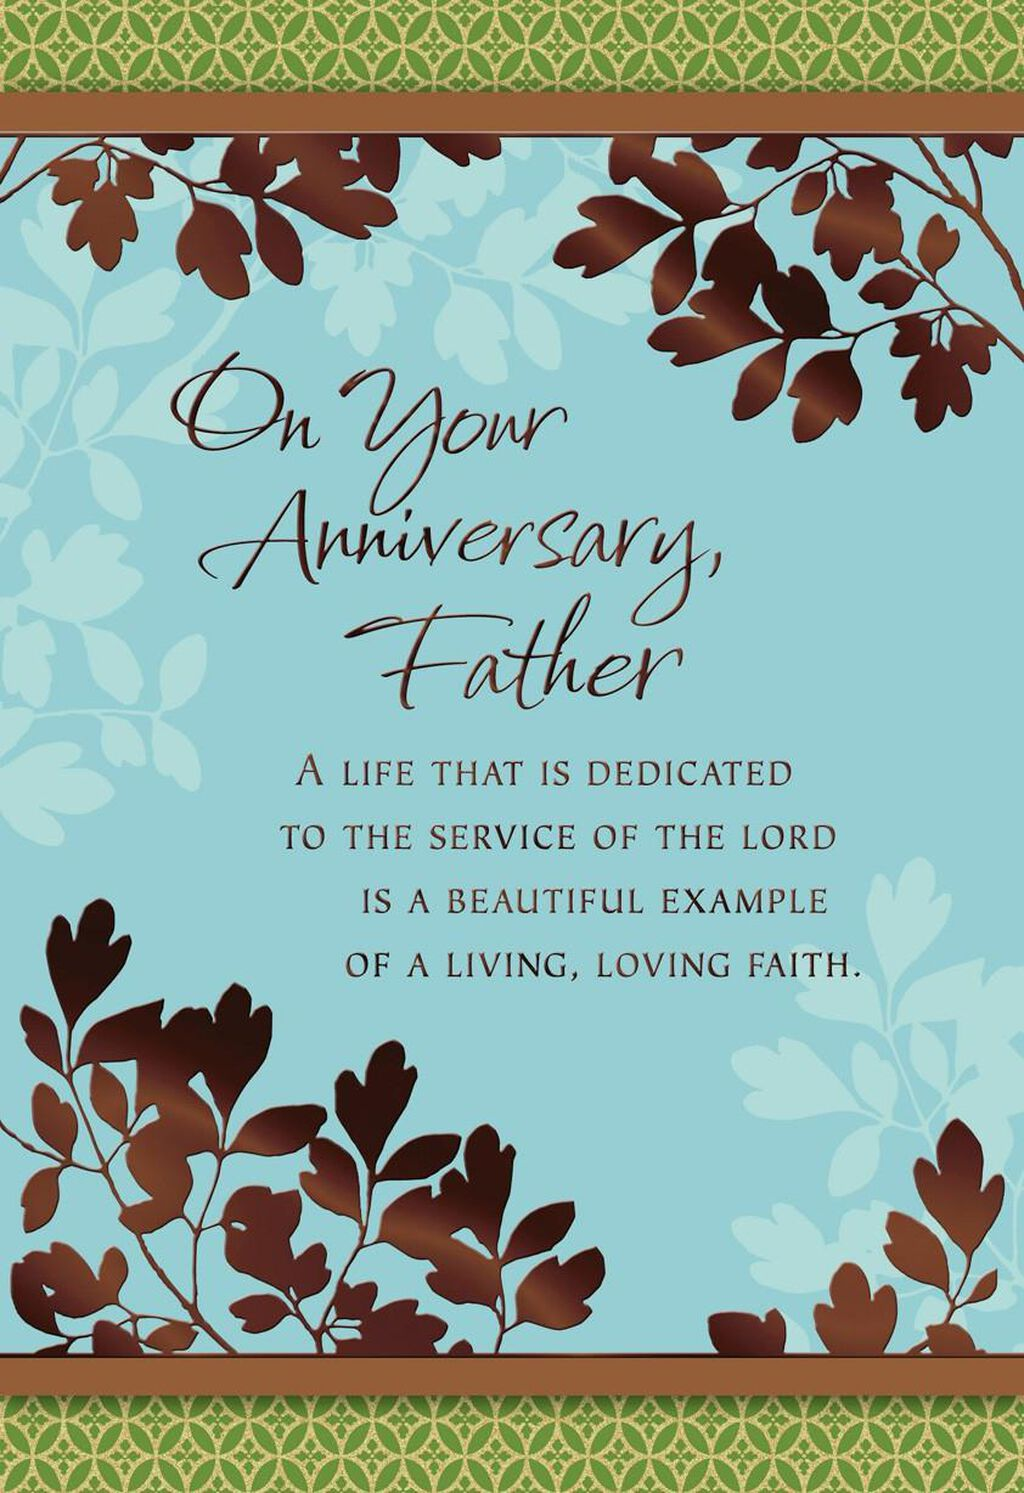 Leafy Branches Anniversary Card for